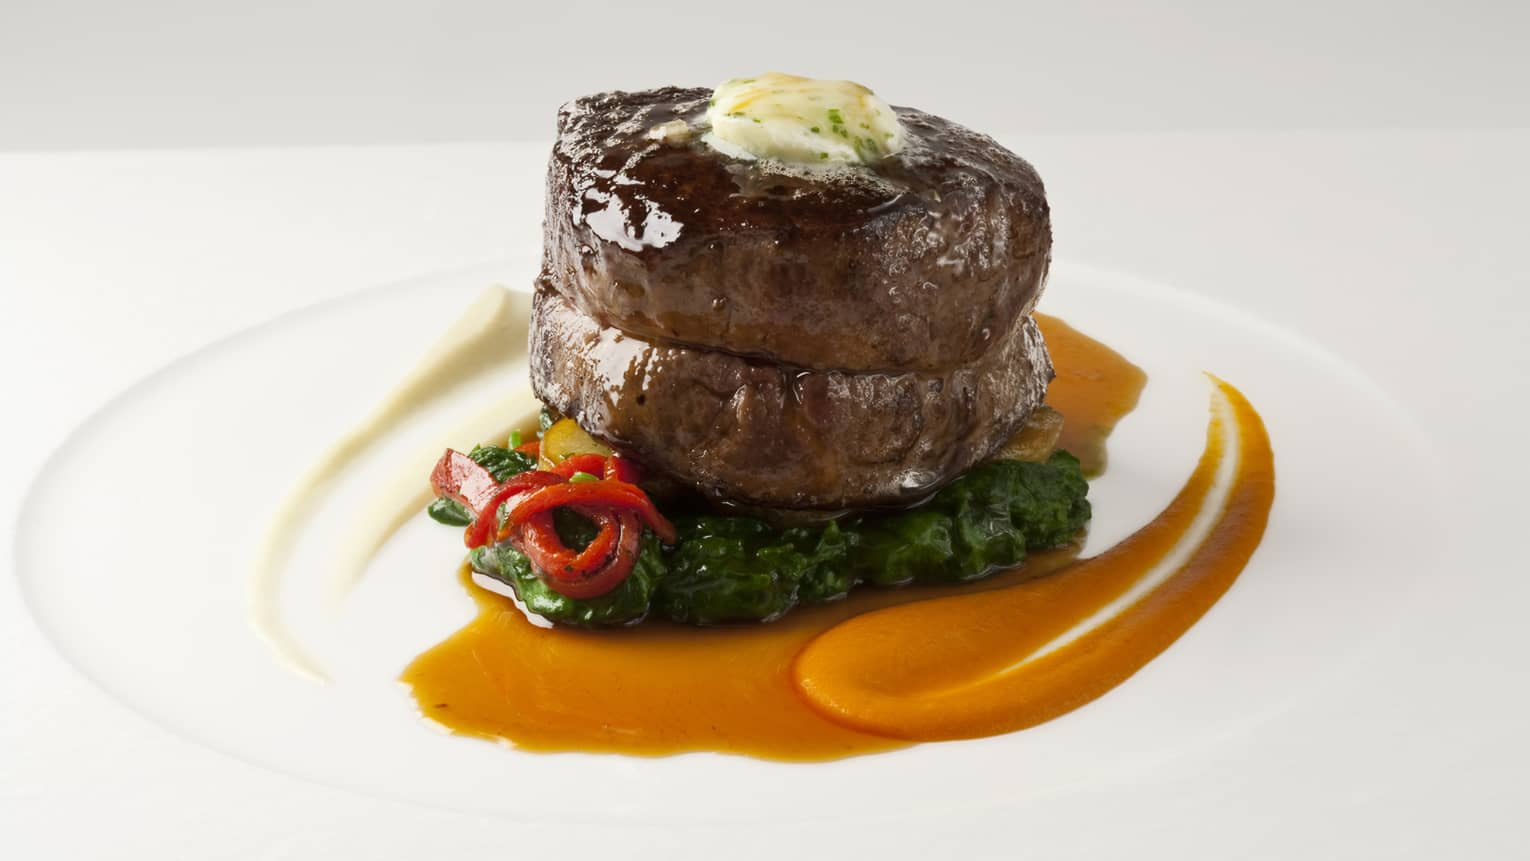 Thick Filet Mignon steak topped with melted butter, sauce on sauteed greens, peppers